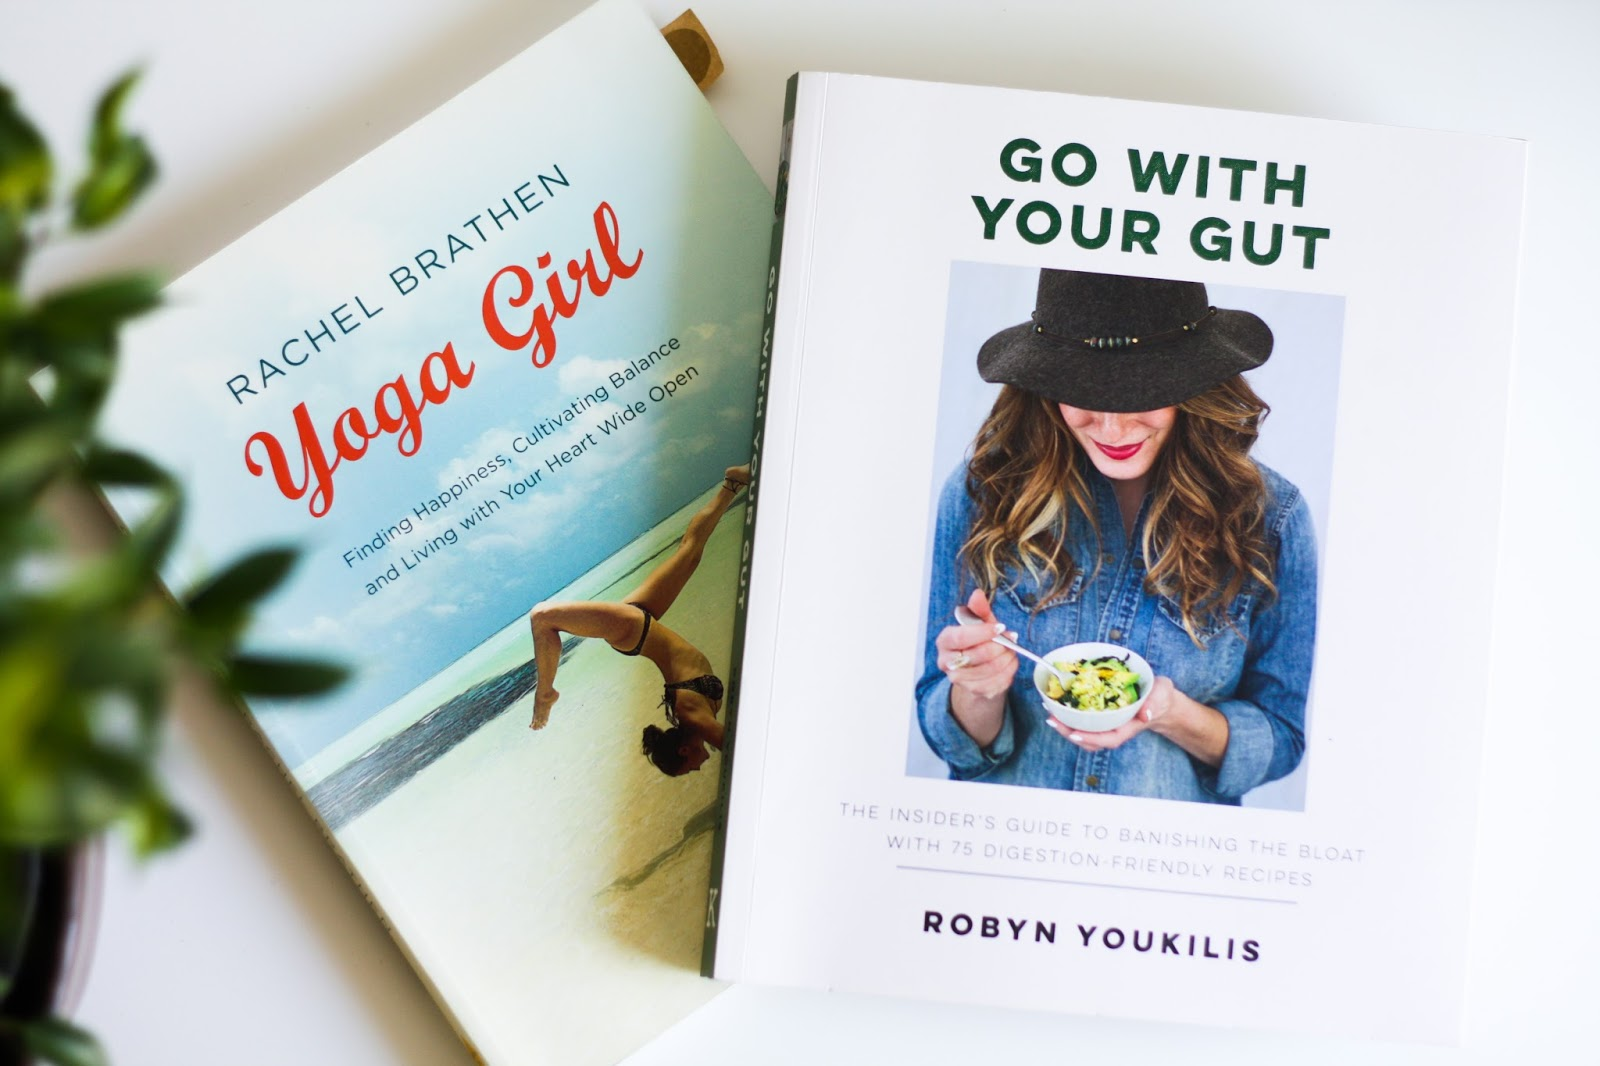 GO WITH YOUR GUT - Robyn Youkilis book review